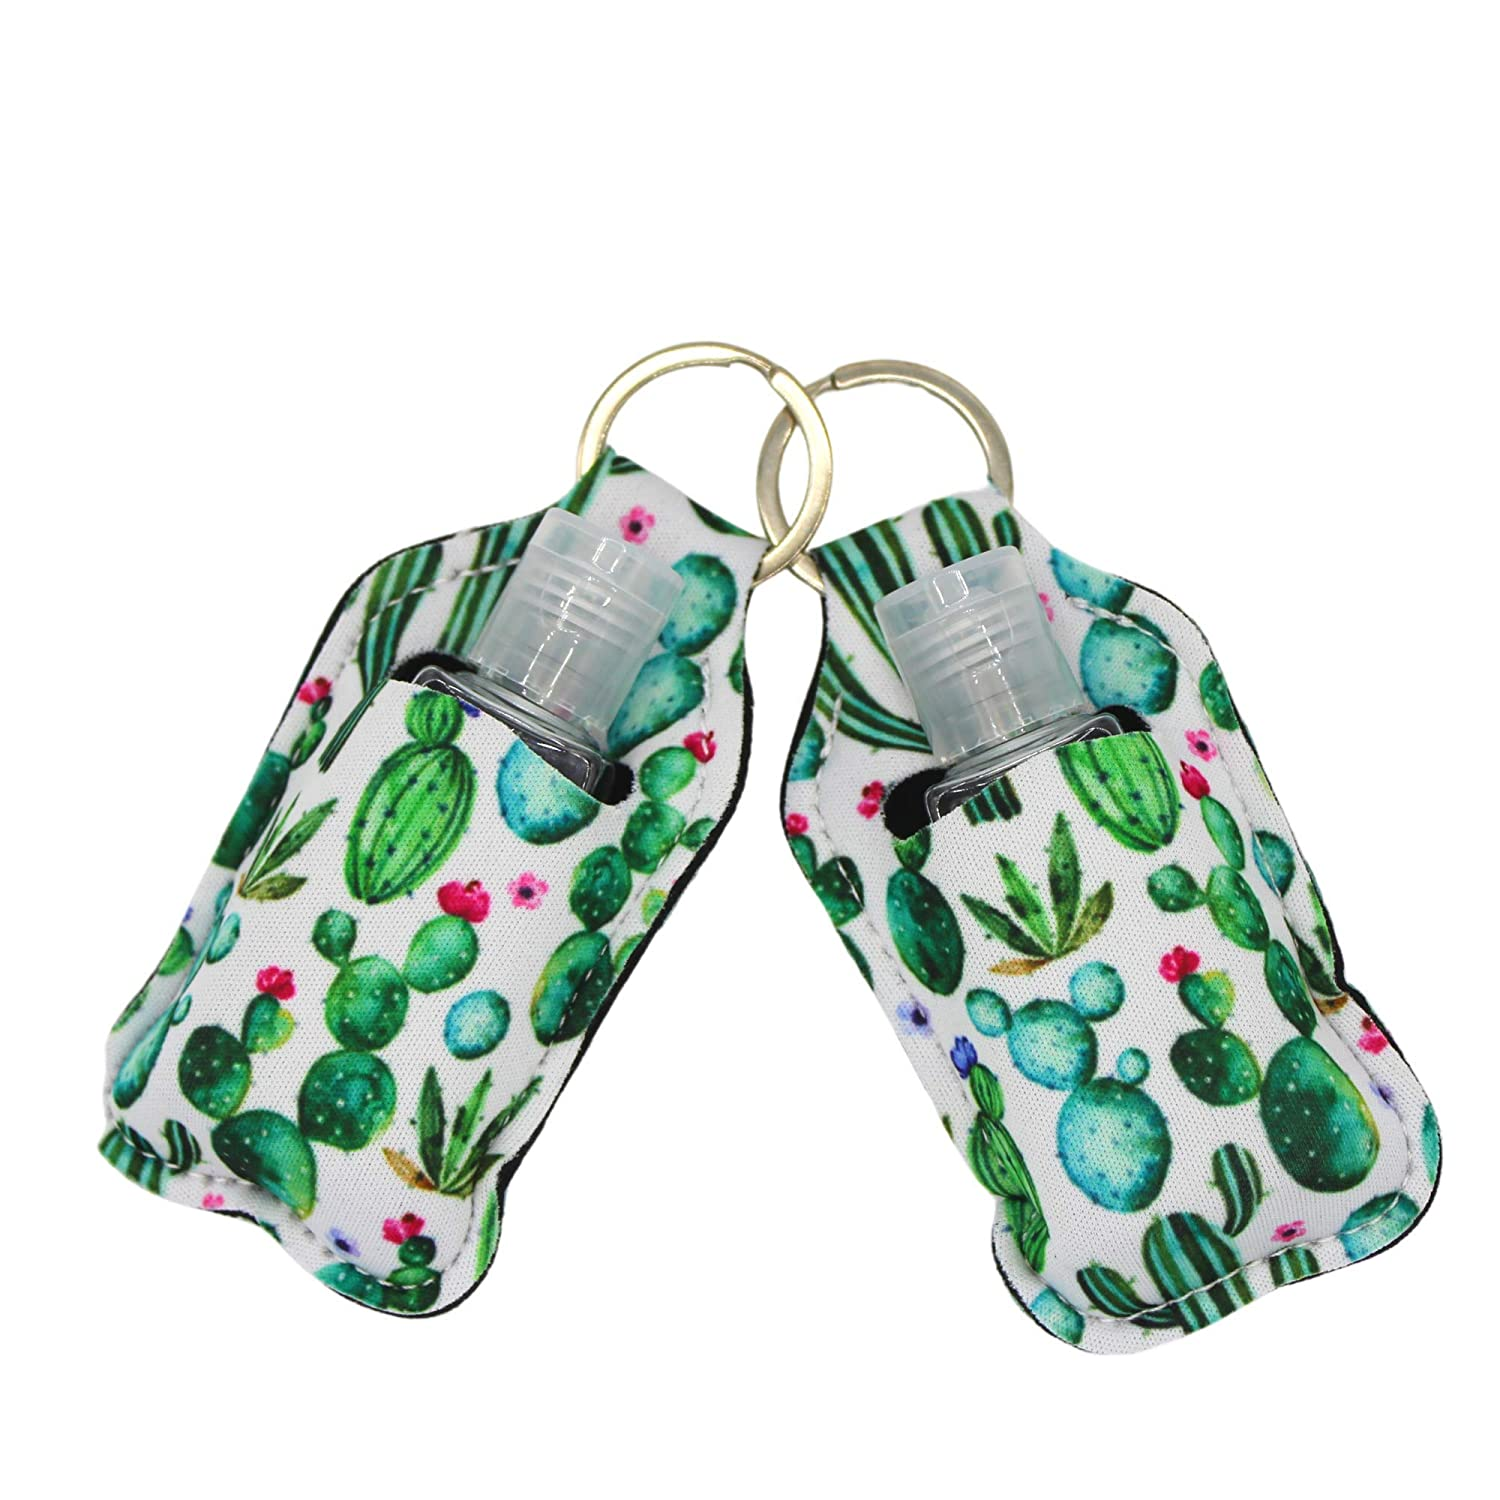 Loxie 2 Piece Keychain Hand Sanitizer Holder with 1 oz Travel Size Refill Plastic Bottle (Cactus)